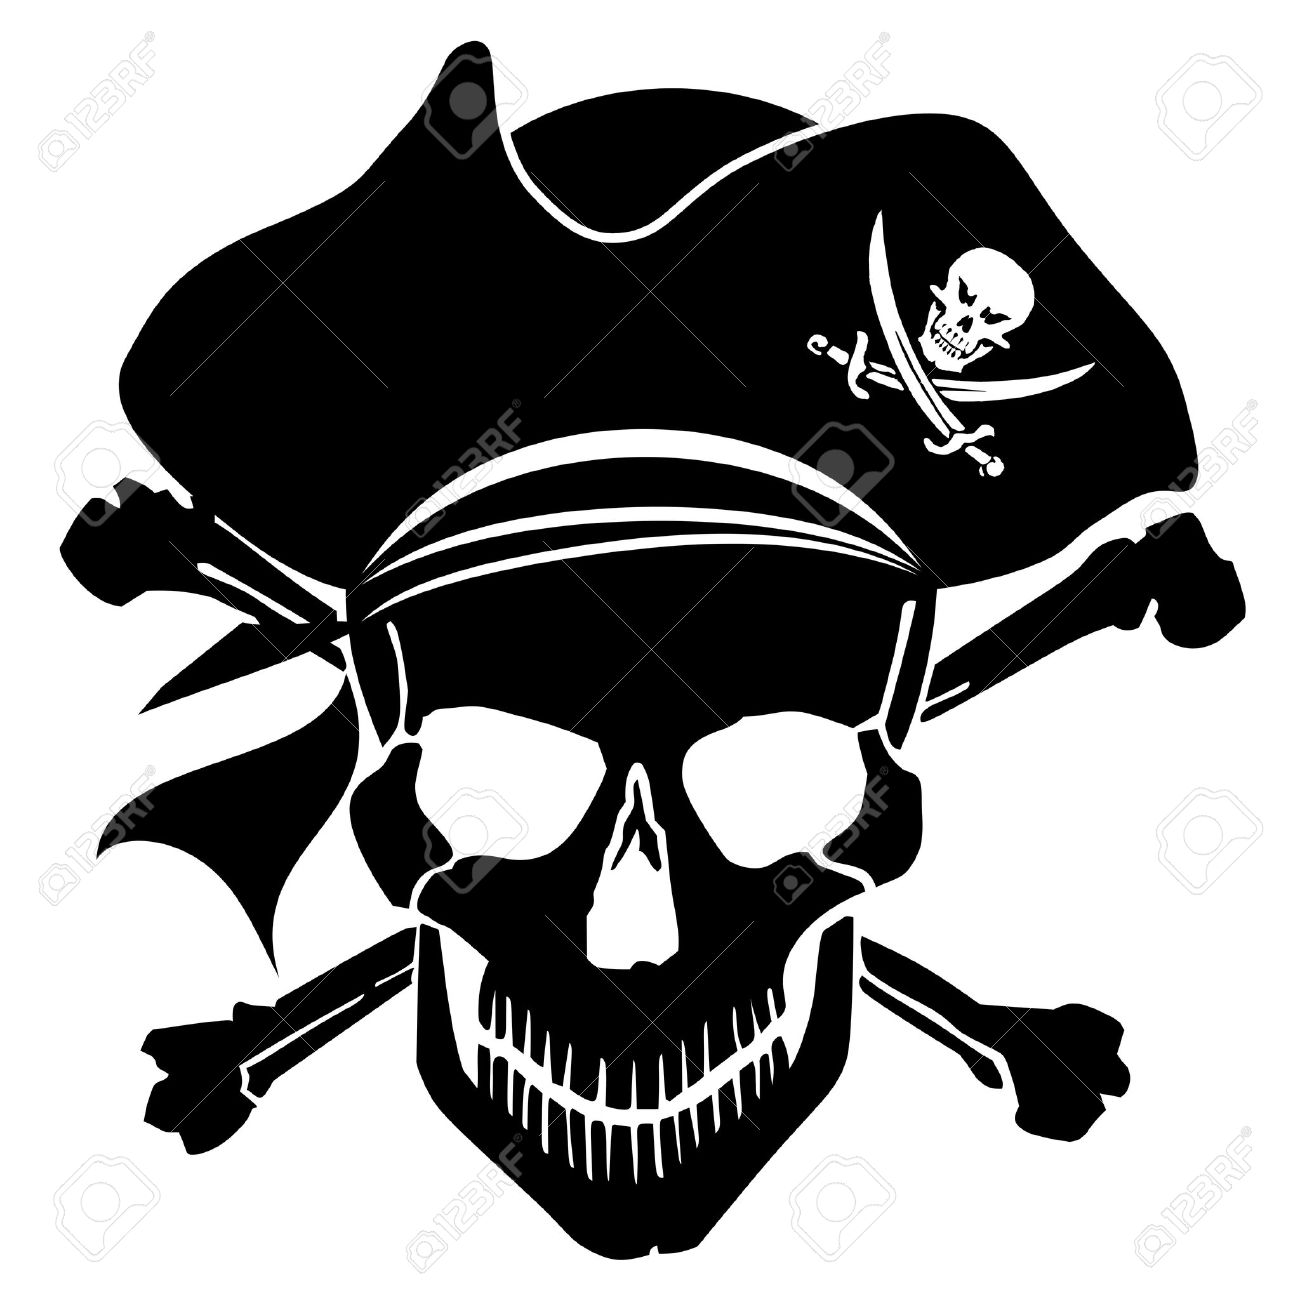 Pirate Skull Captain with Hat and Cross Bones Clipart Illustration - 11134091